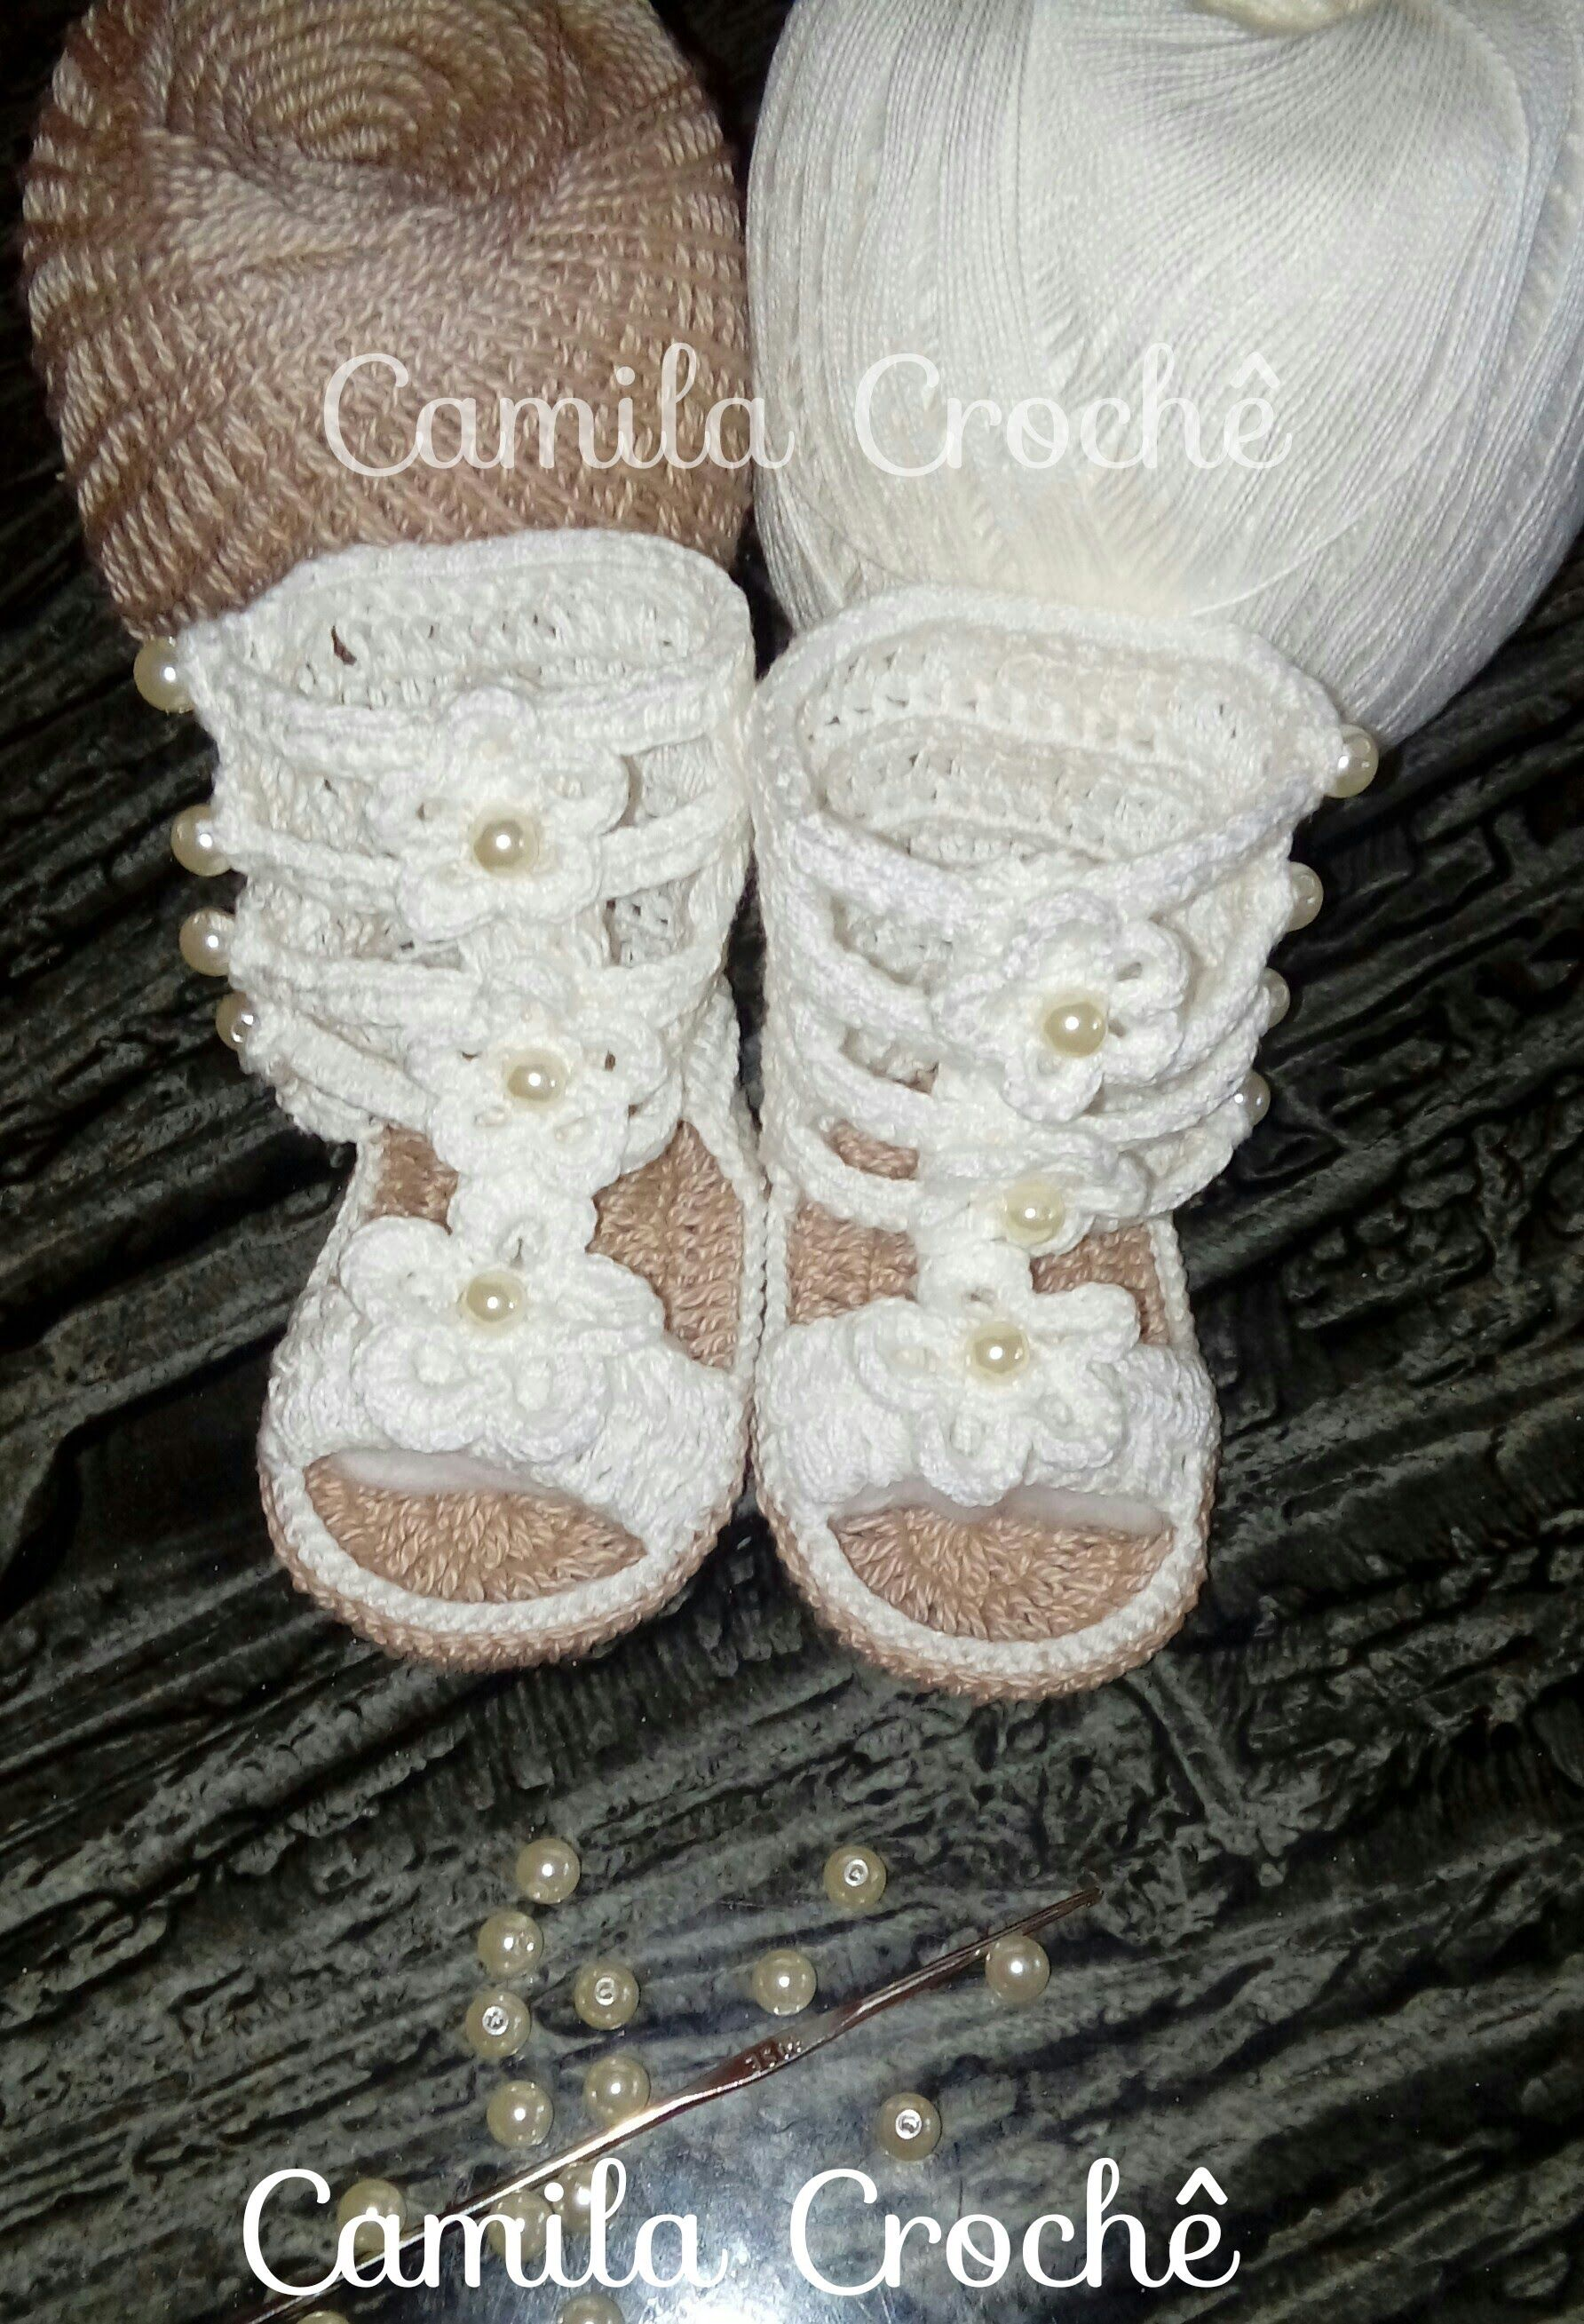 1000 images about zapaticos de beb on pinterest crochet baby patterns and bebe